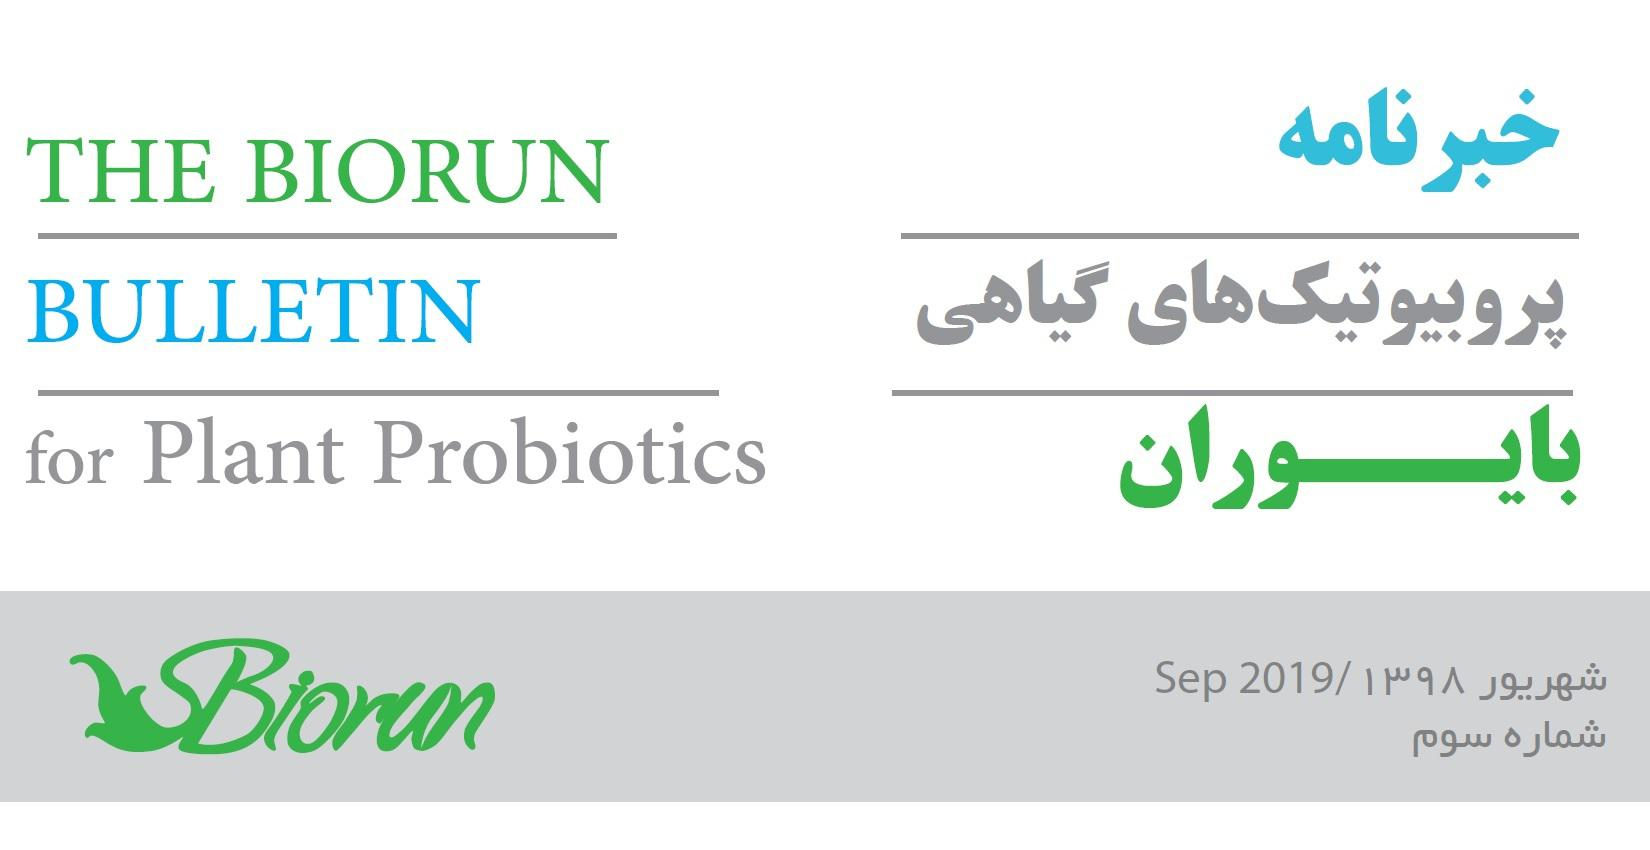 The Biorun Bulletin for Plant Probiotics, No. 3, September 2019